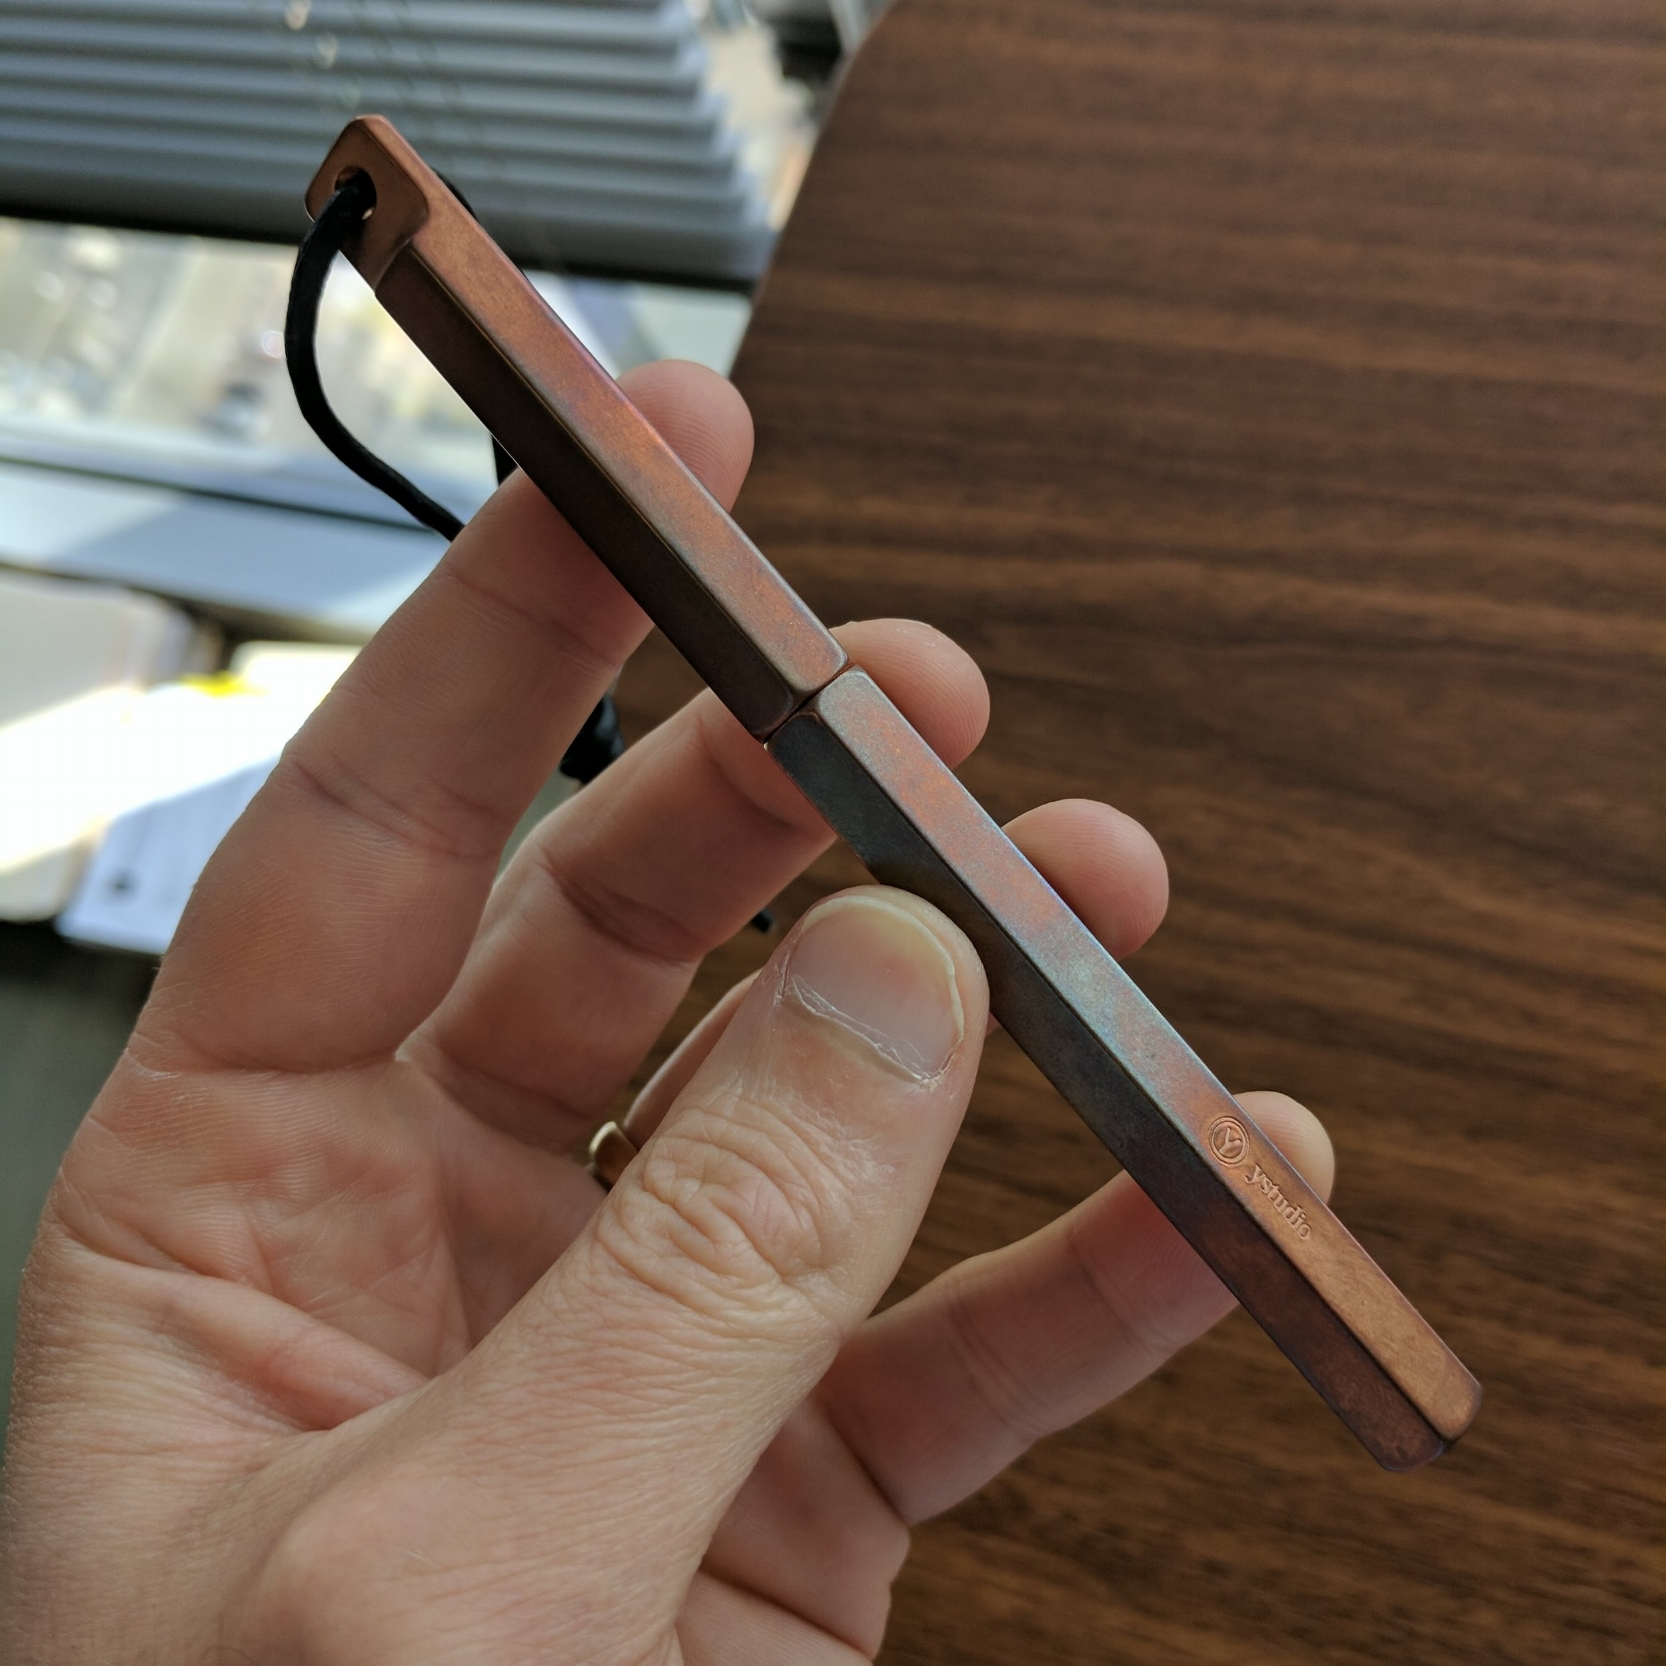 Check out that bluish patina on the copper ystudio Portable!